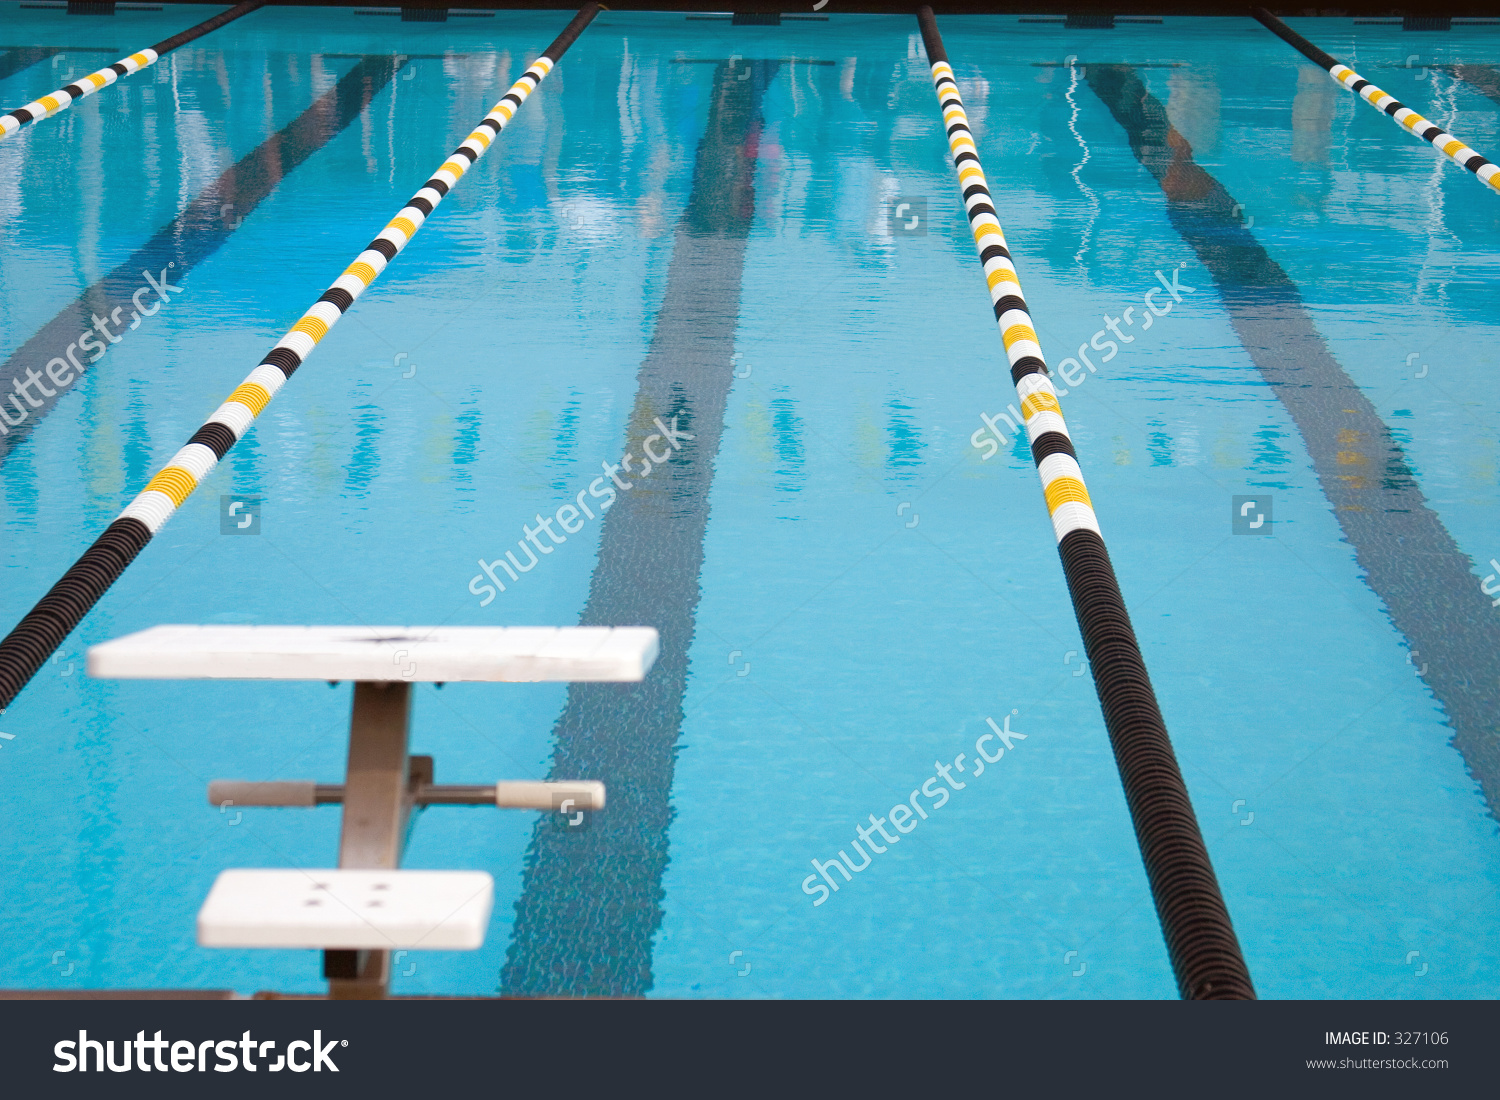 An Olympic Size Swimming Pool Stock Photo 327106 : Shutterstock.